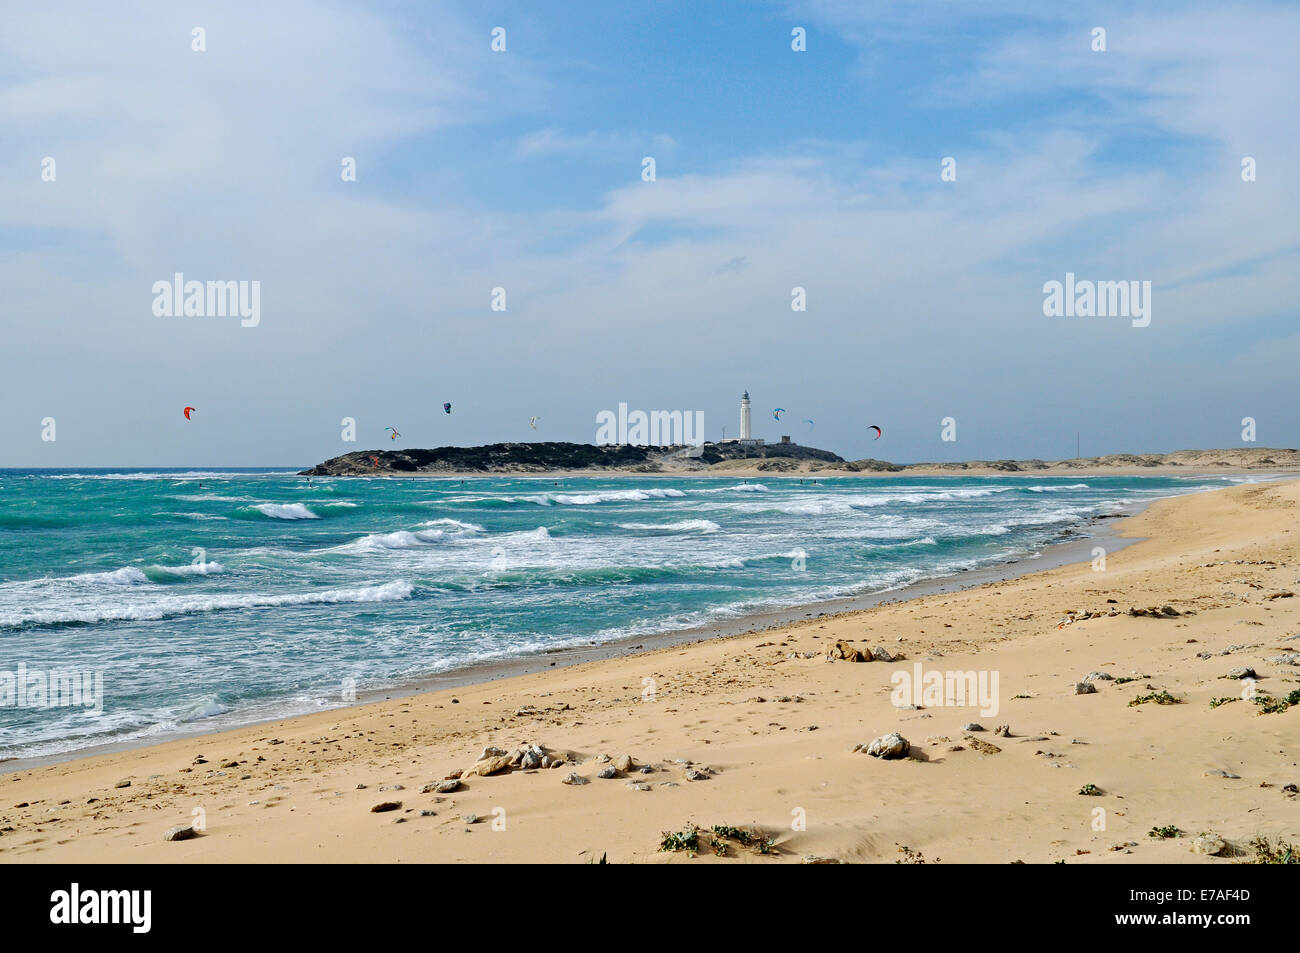 Playa de Caños de Meca, beach, kitesurfers, Cabo de Trafalgar at the back, lighthouse, Barbate, Cadiz province, - Stock Image